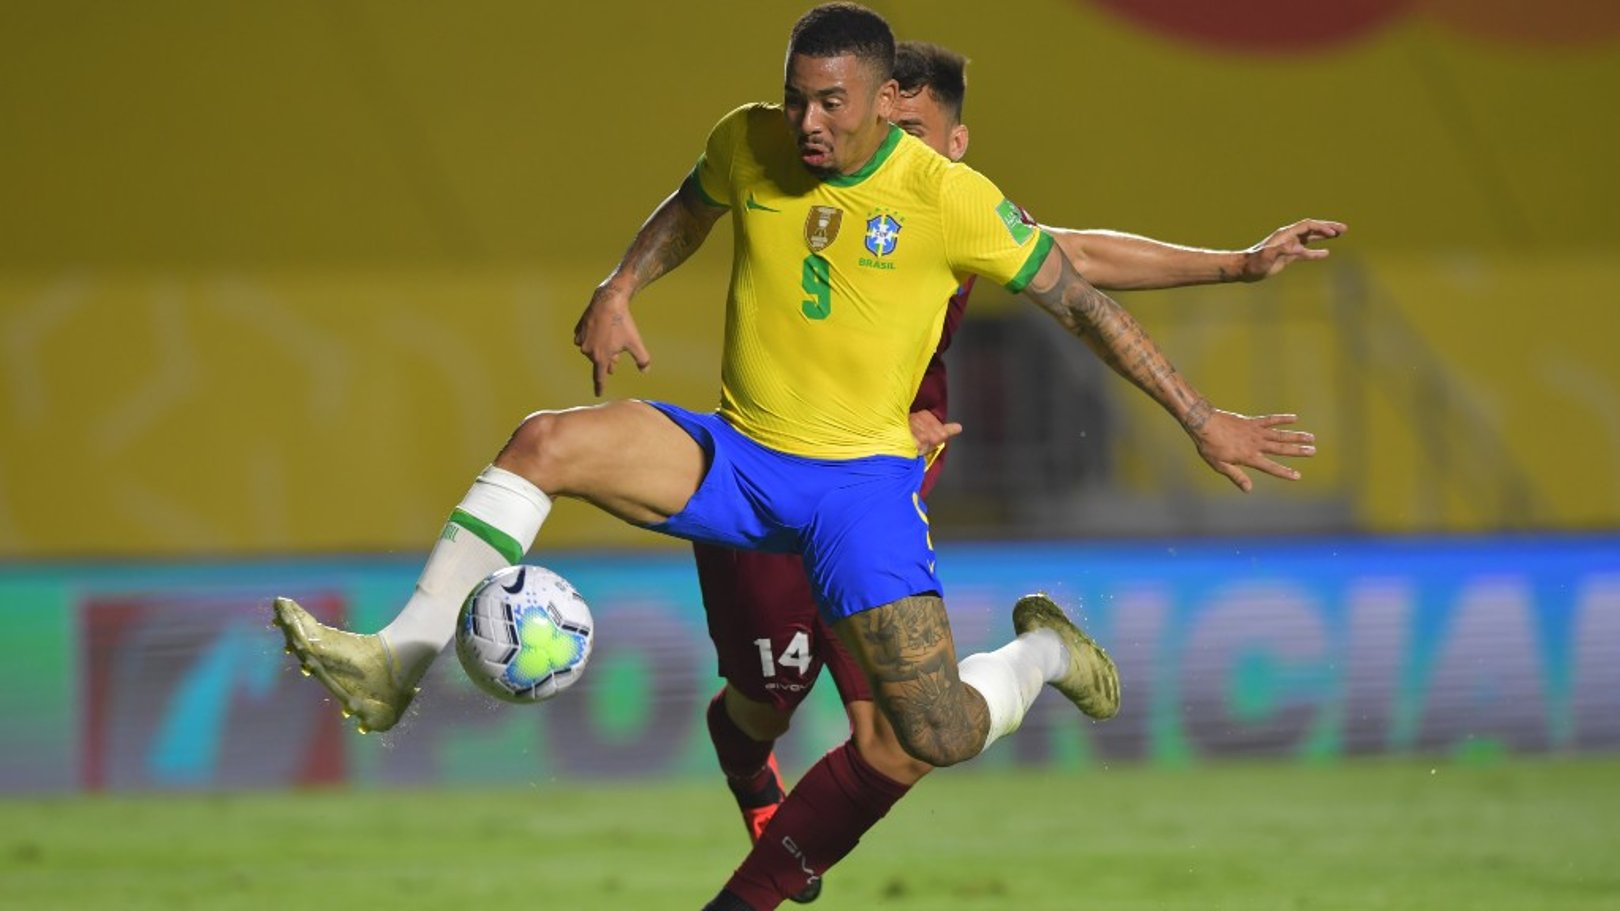 Ederson and Jesus help Brazil to victory